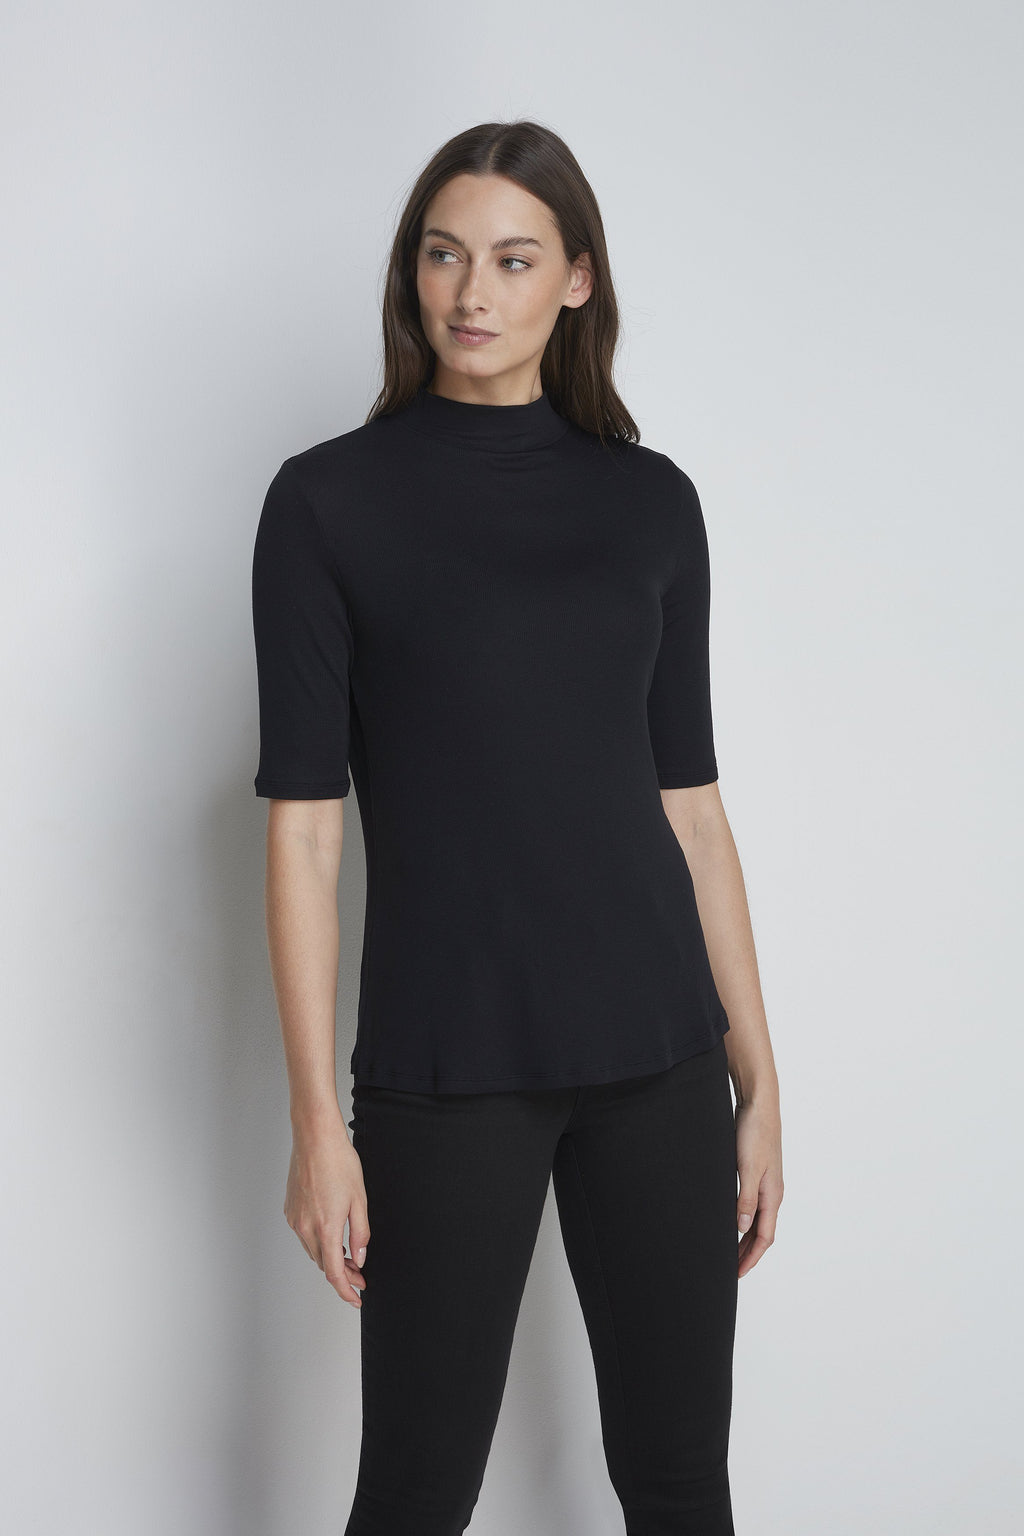 Half Sleeve Mock Neck - High Quality Black Mock Neck - Half Sleeve Flattering Mock Neck - Sustainable Lavender Hill Clothing